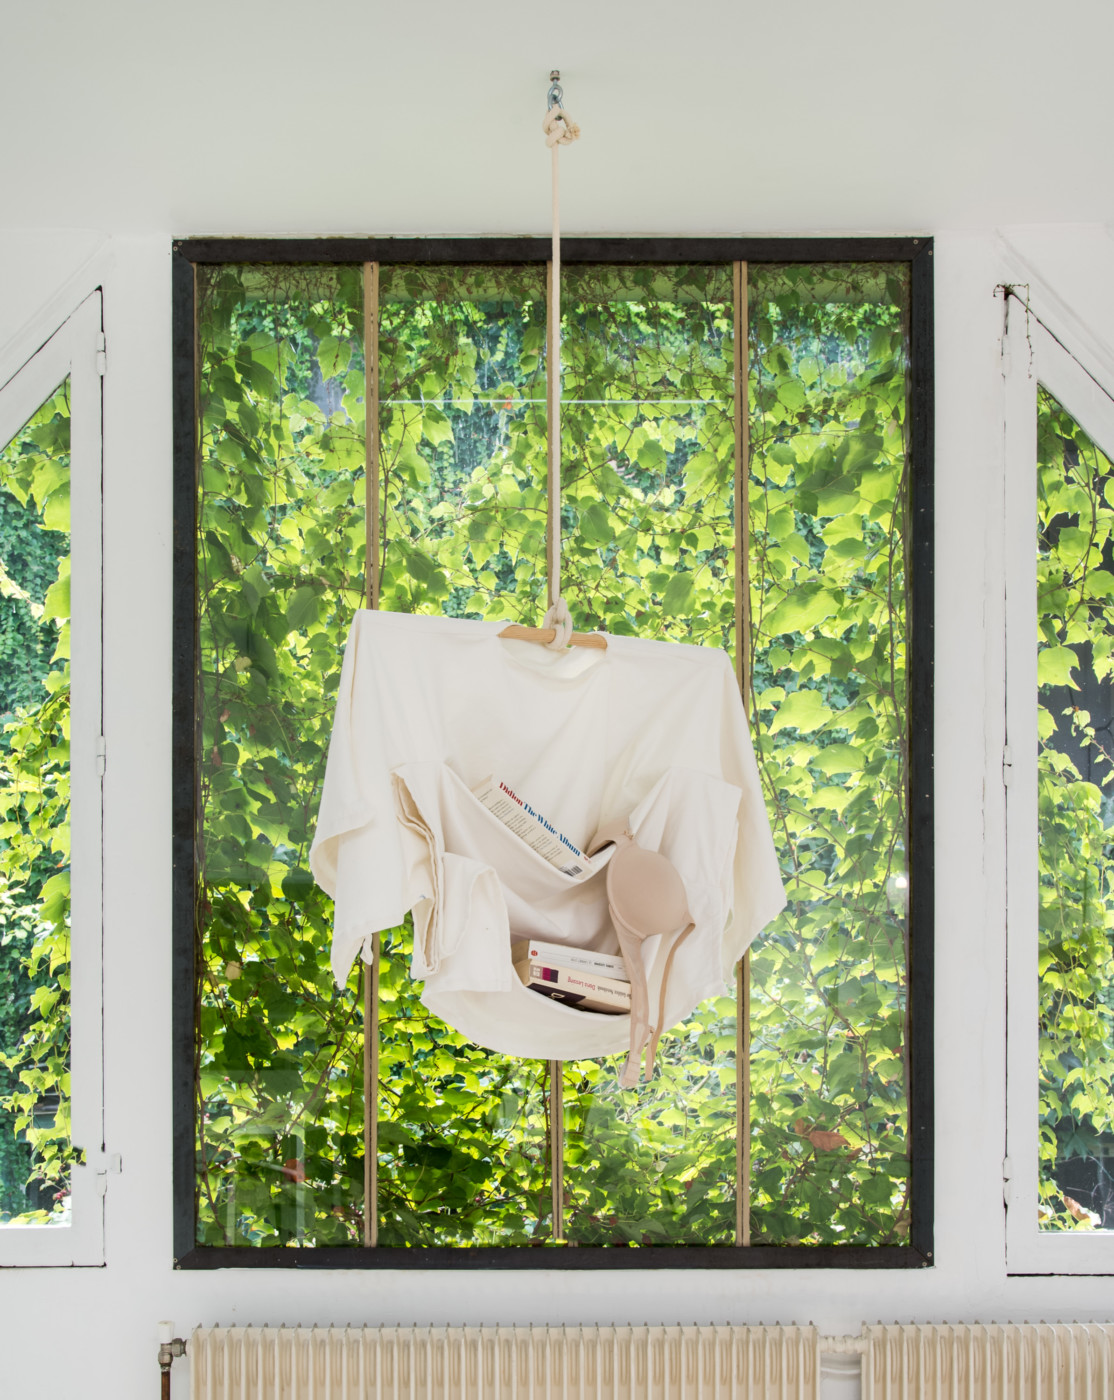 MÉLANIE MATRANGA  Moi , 2018 Cotton, wood, ropes, bra, books 133 x 55 x 22 cm / 52.4 x 21.6 x 8.6 in - High Art Gallery Paris